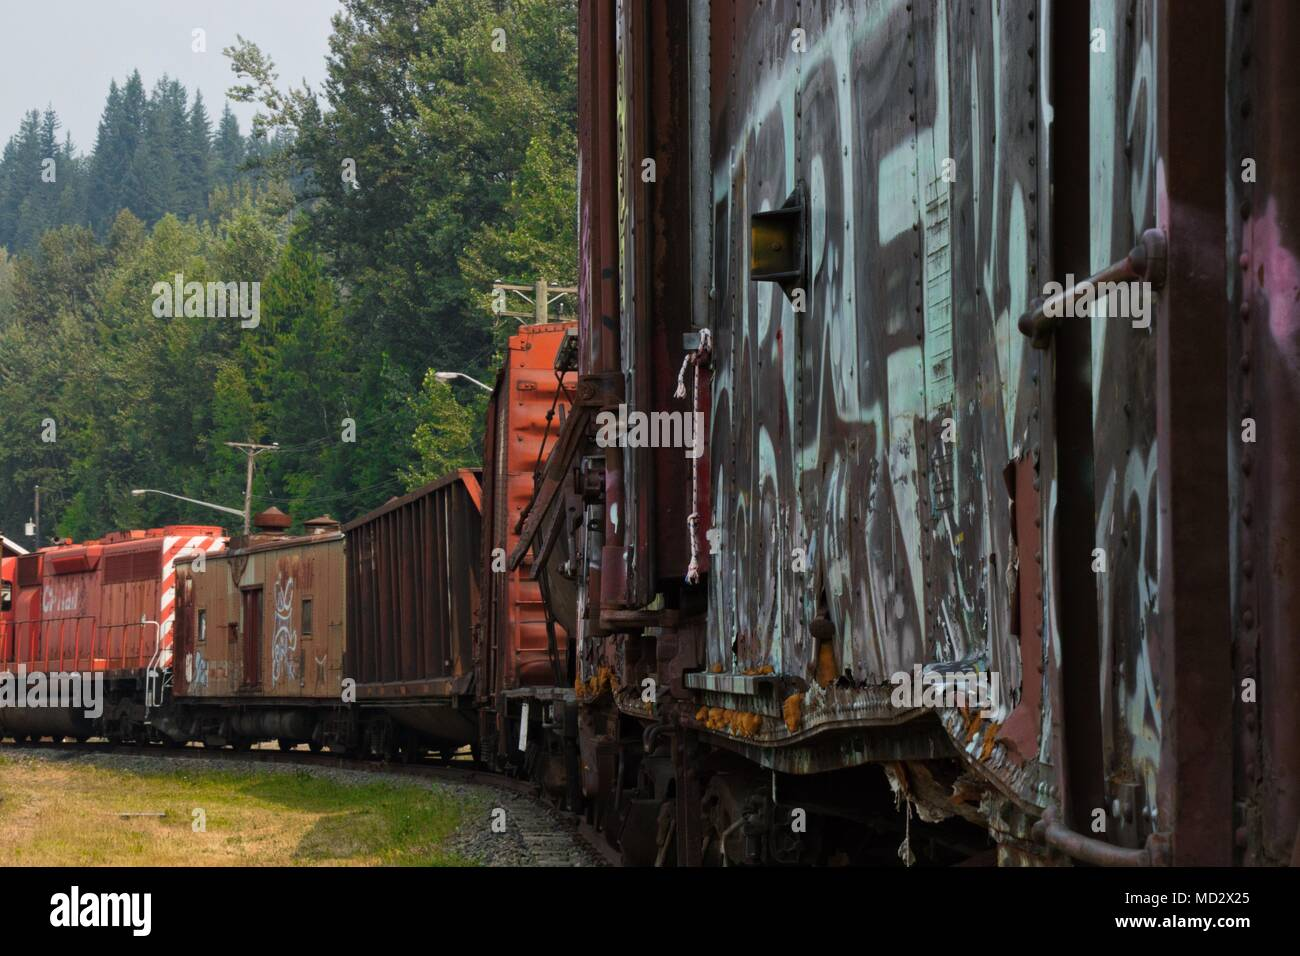 Rusty Old Abandoned Freight Train Stock Photos & Rusty Old